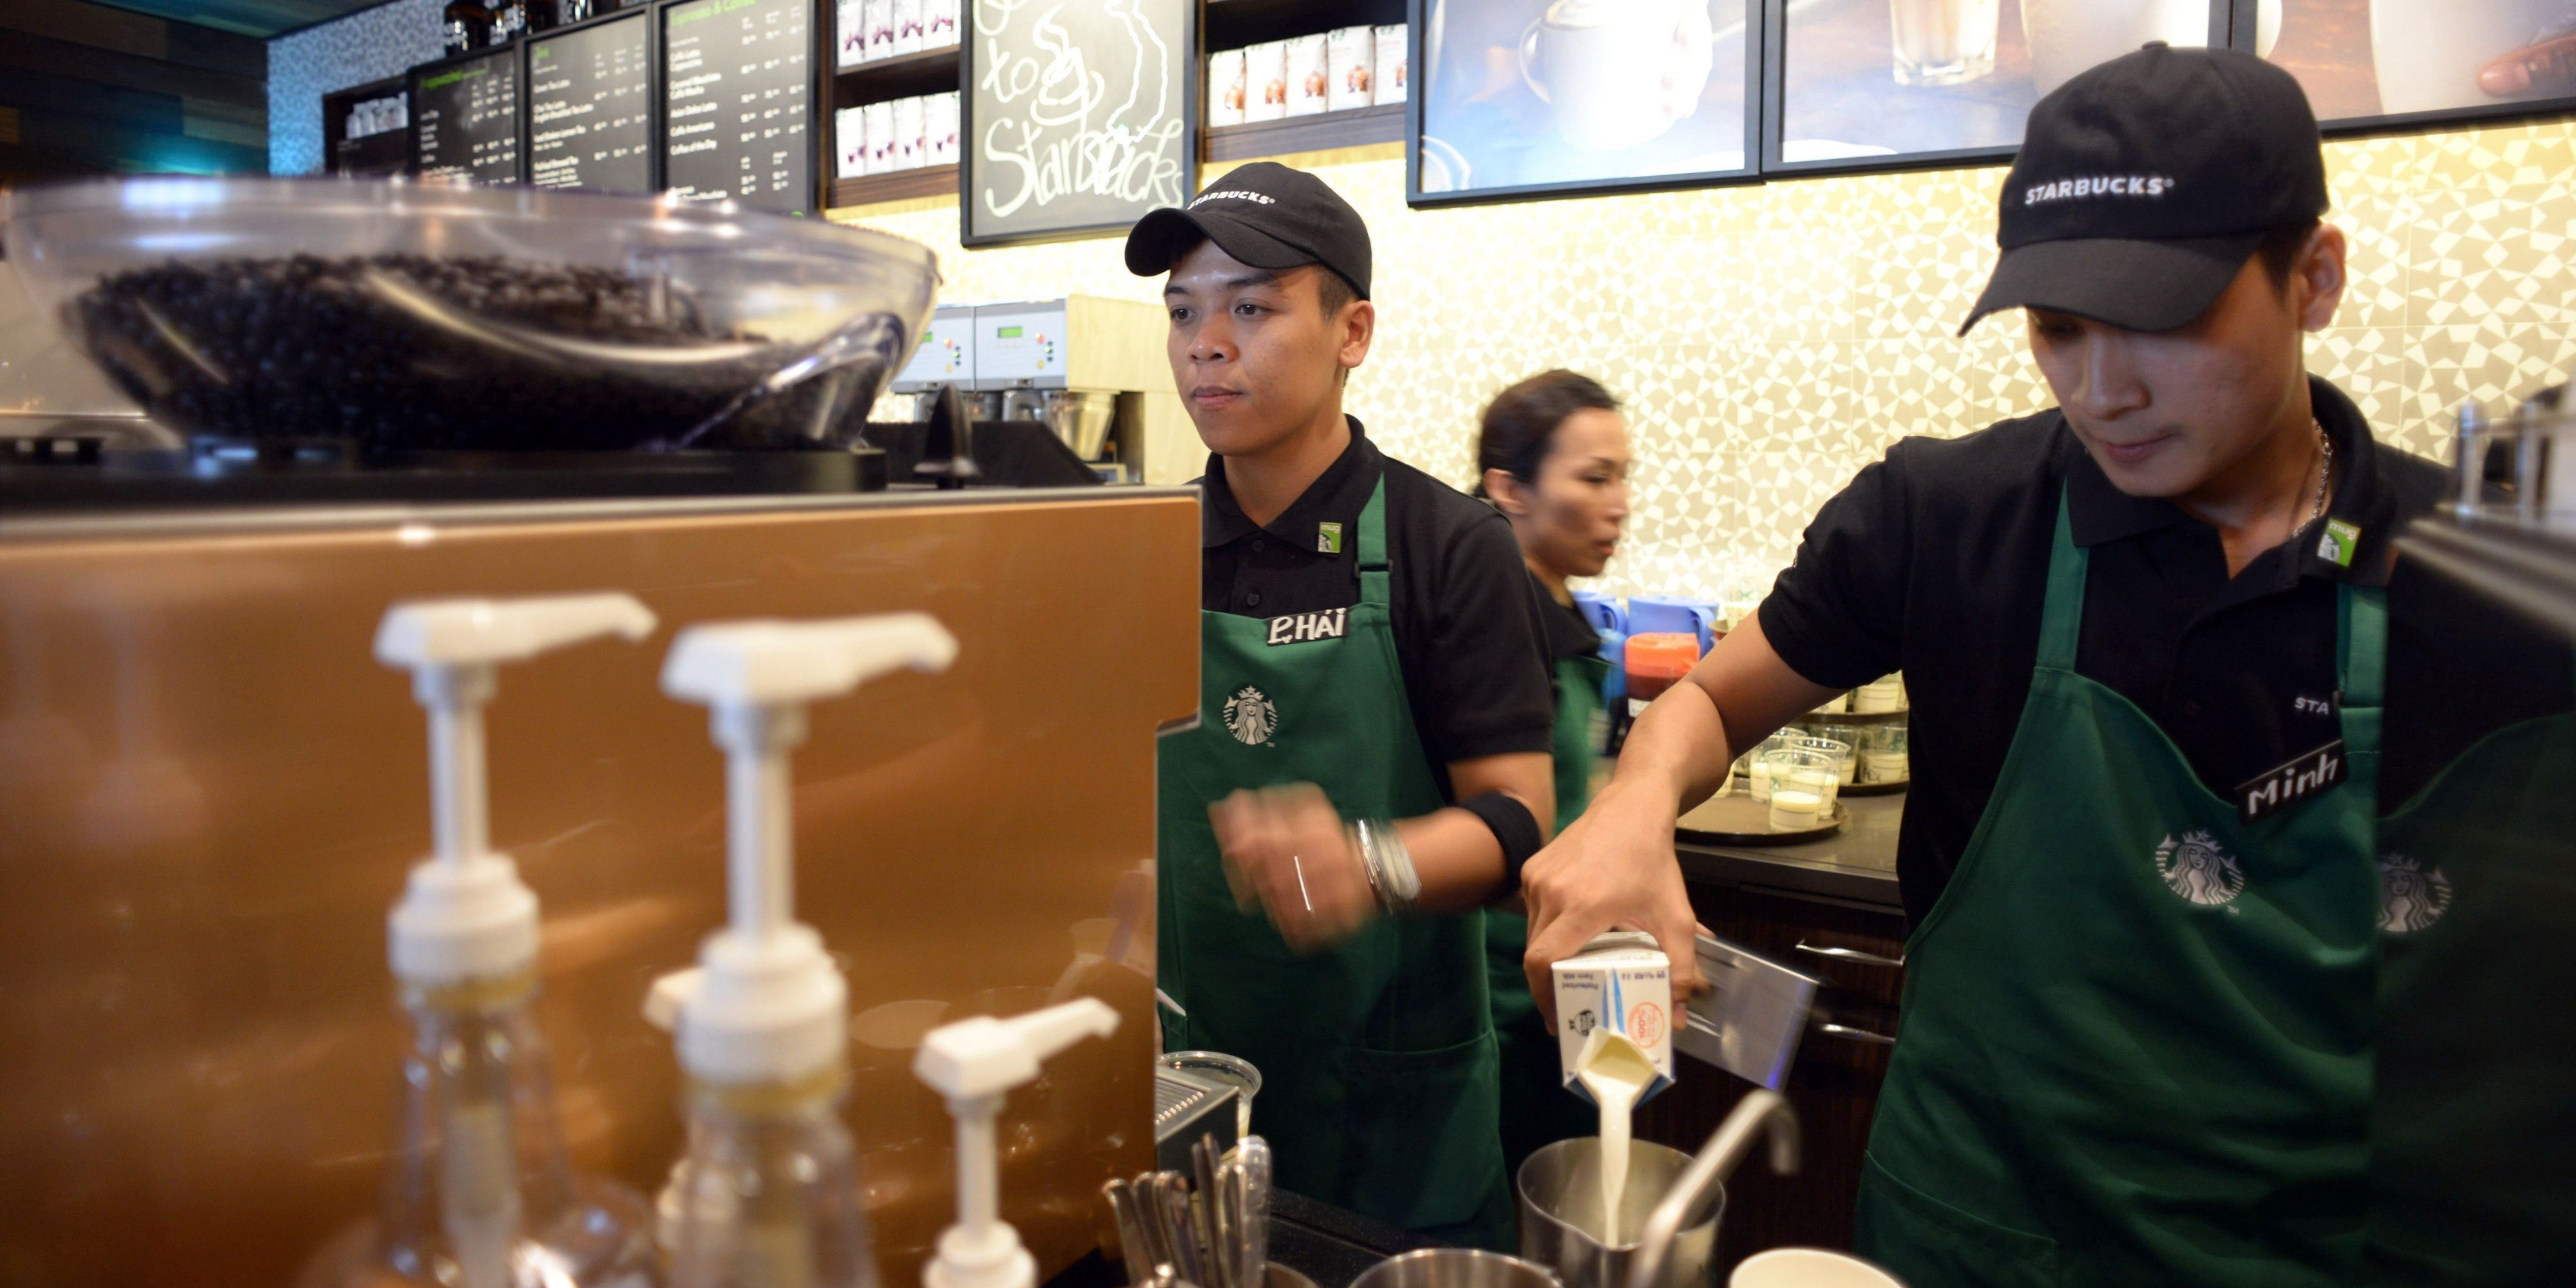 Angry Starbucks Employees Continue to Demand Better Work